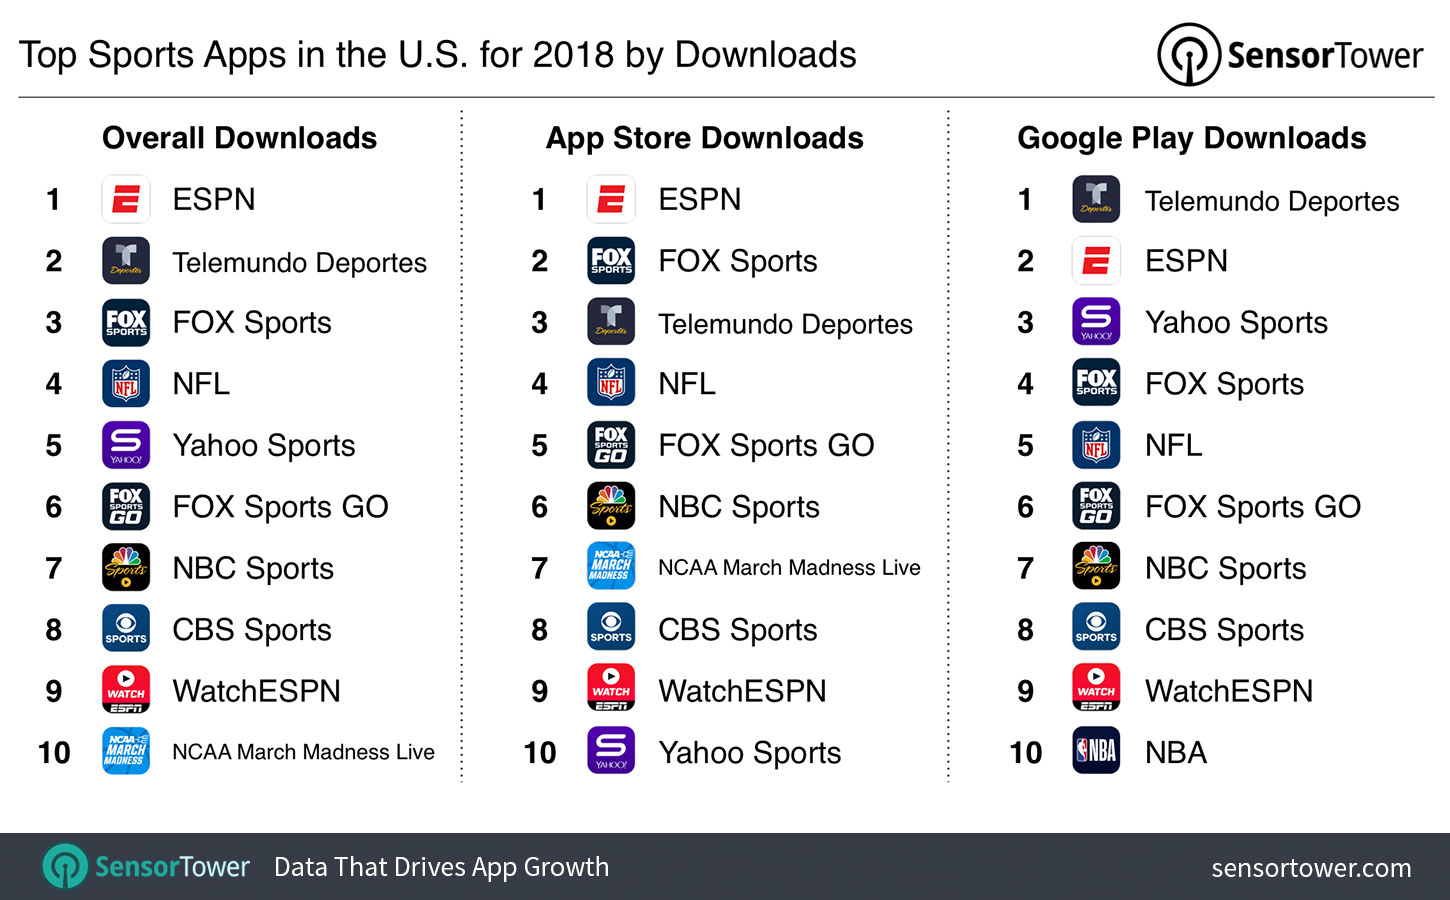 Top Sports Apps for 2018 by Downloads